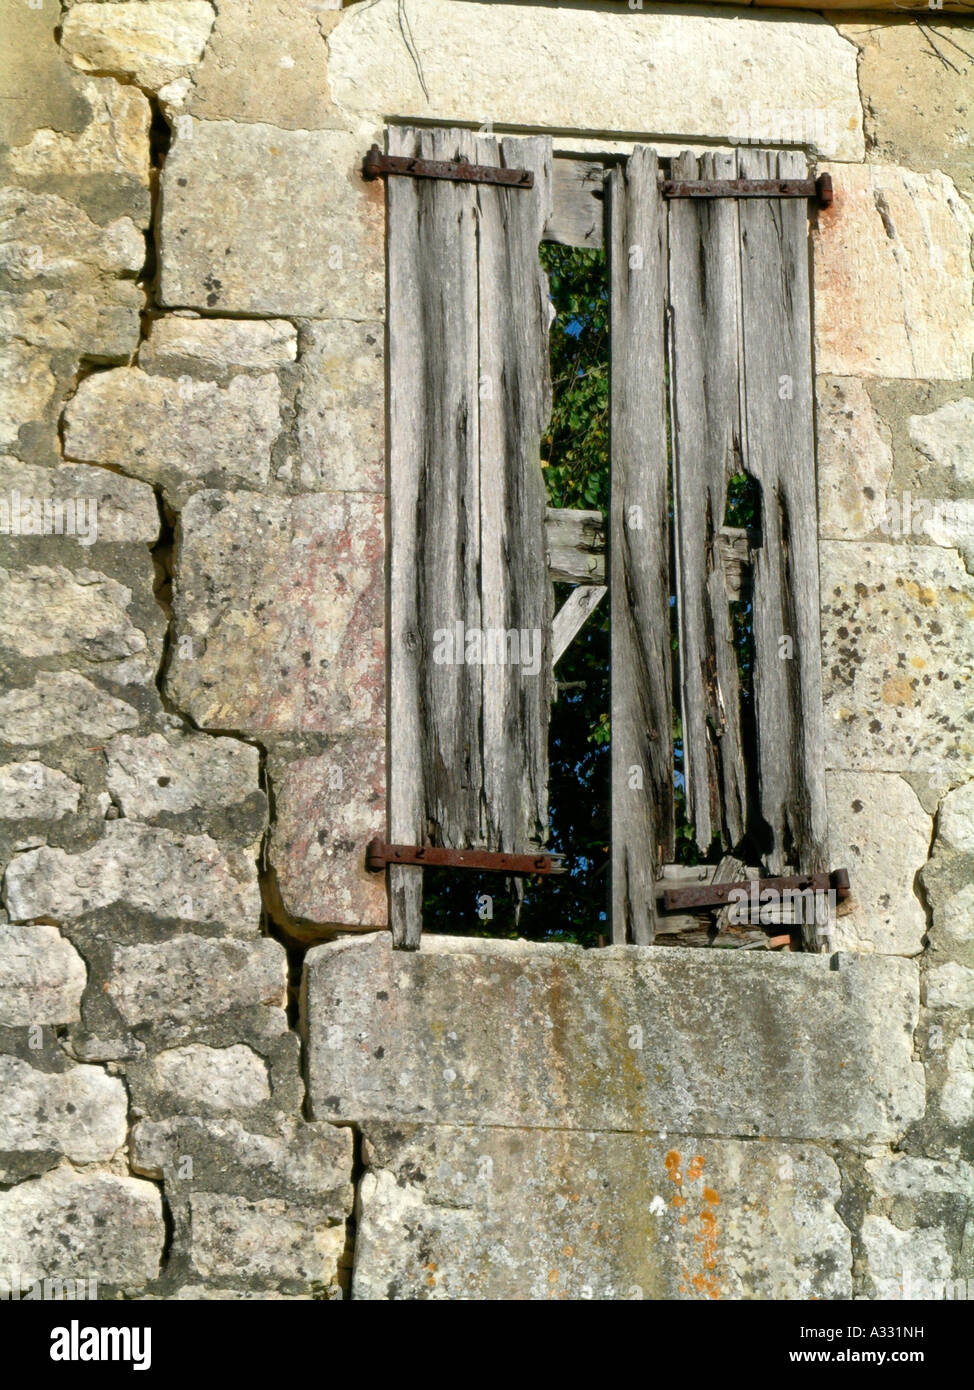 remains of a house broken wall with a window and broken down cutters - Stock Image